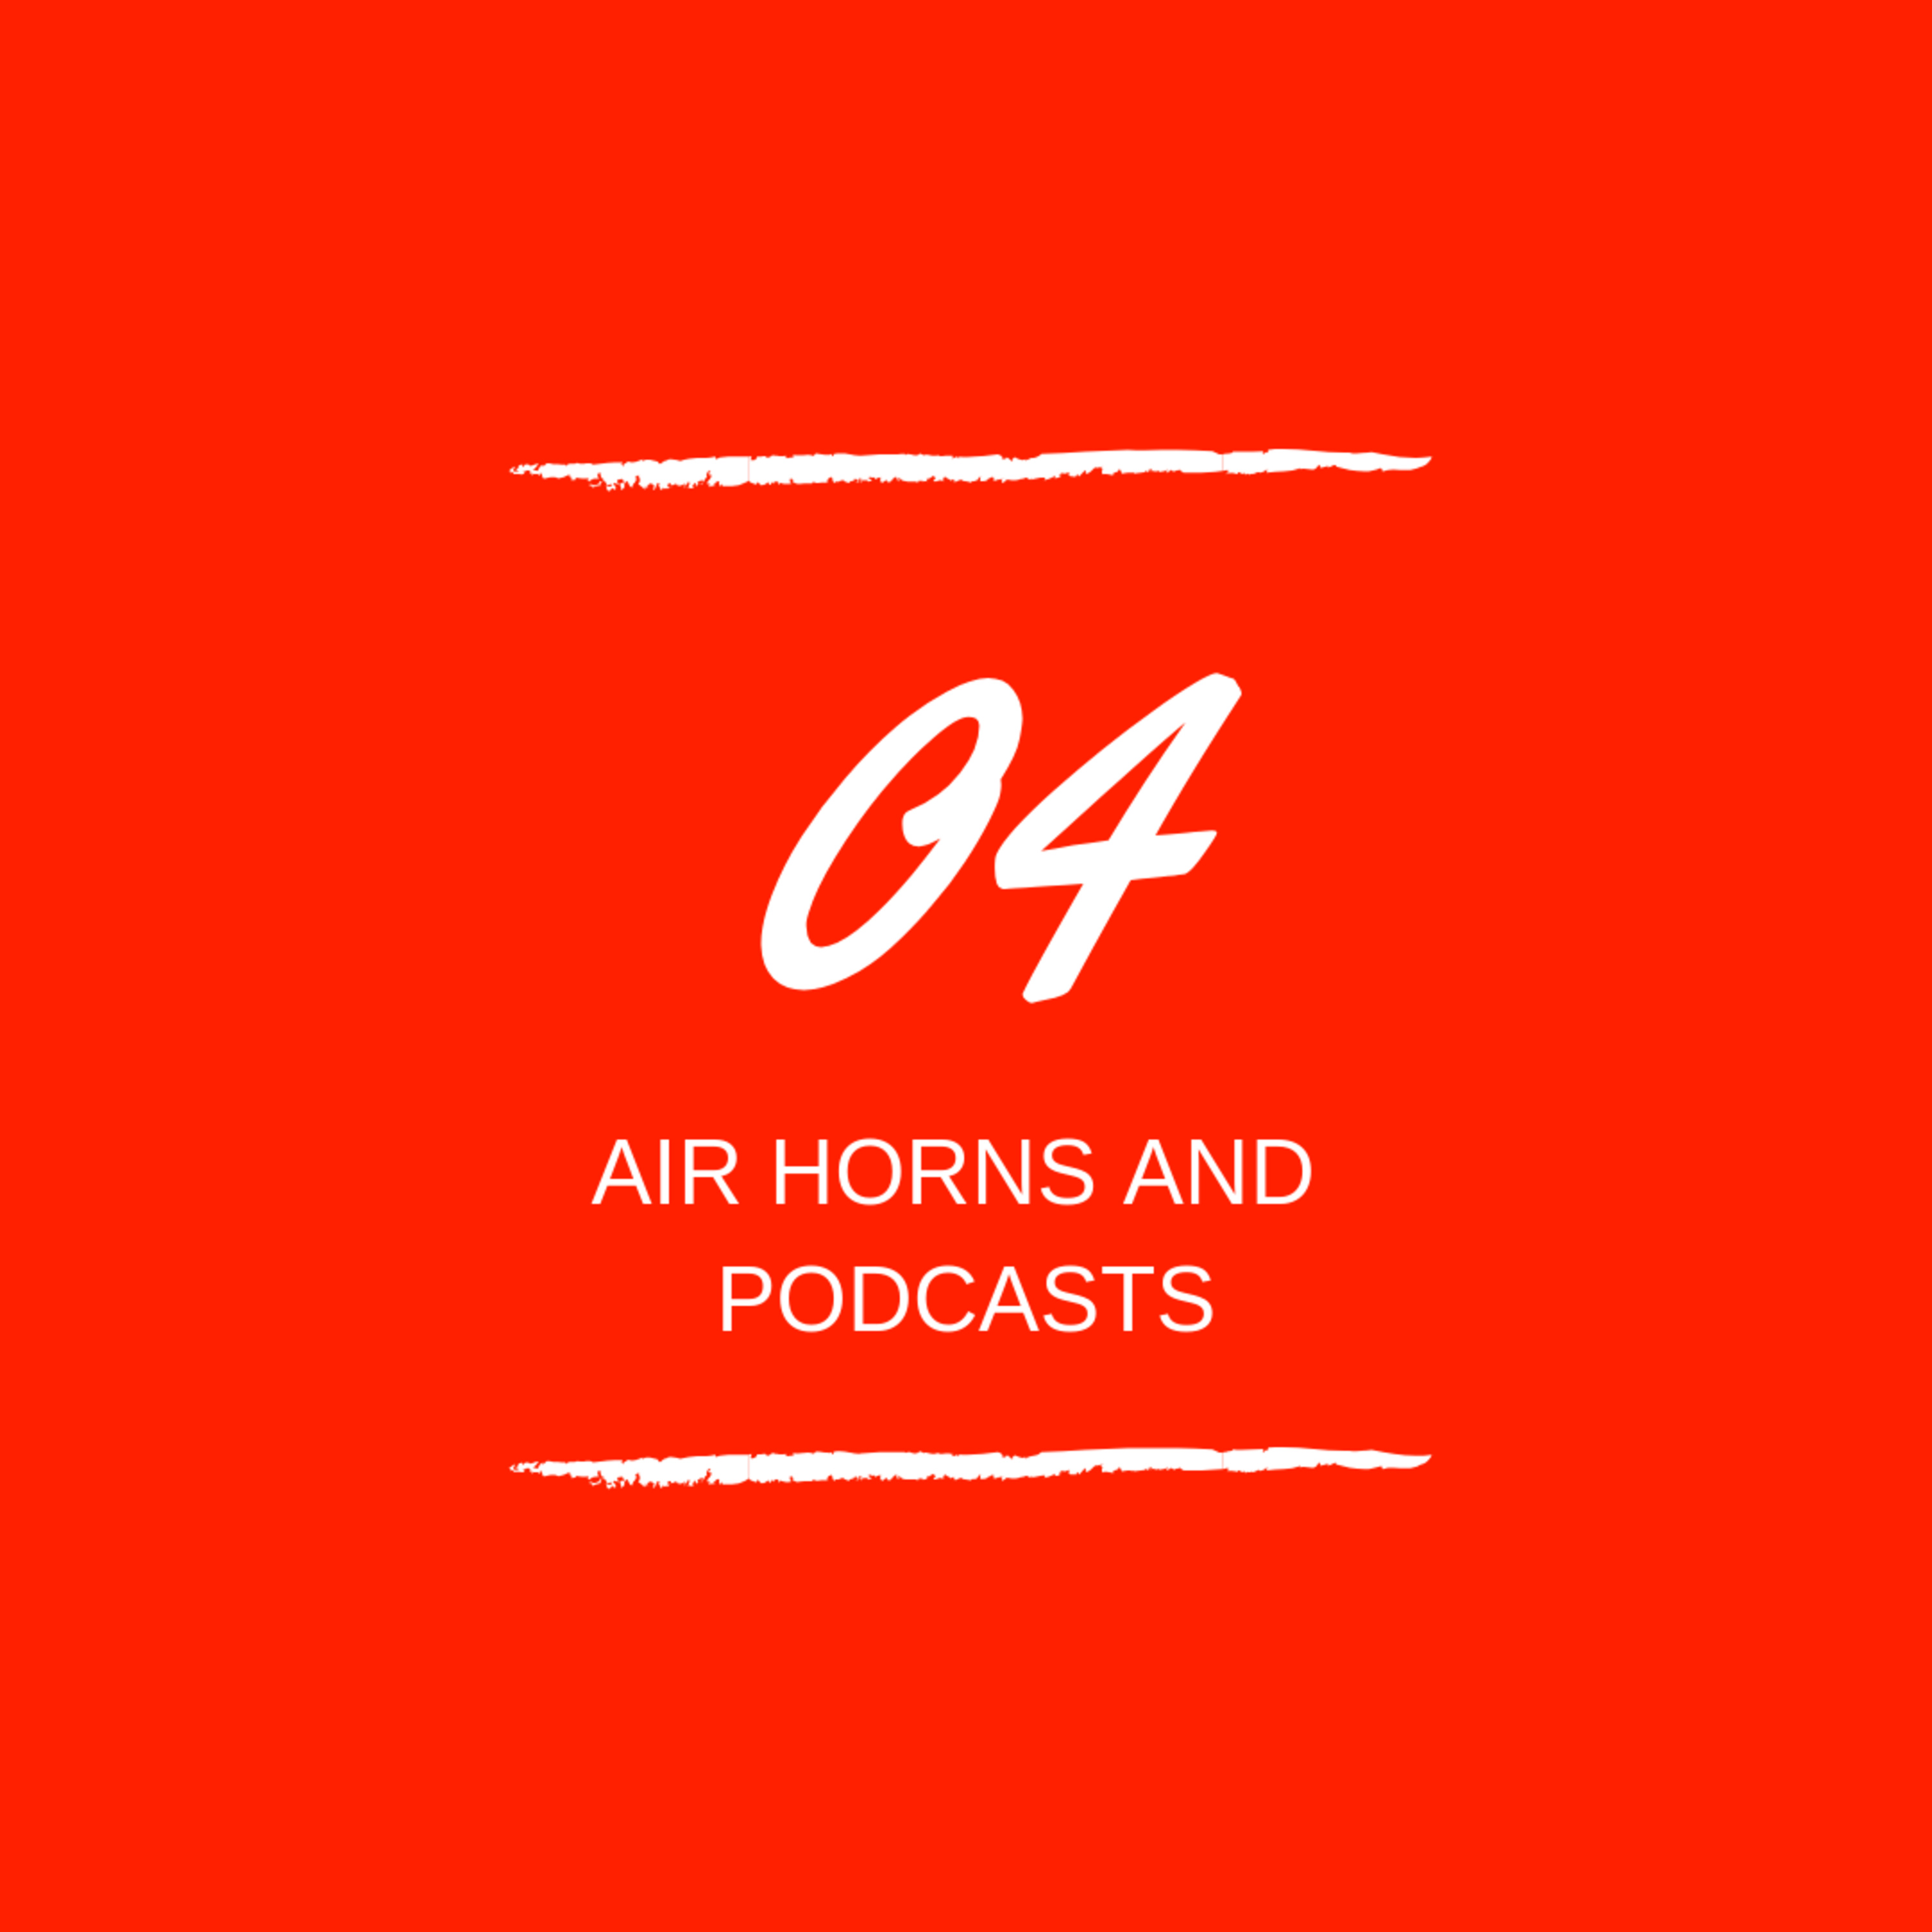 Day 04 : 📯 Air Horns on Podcasts